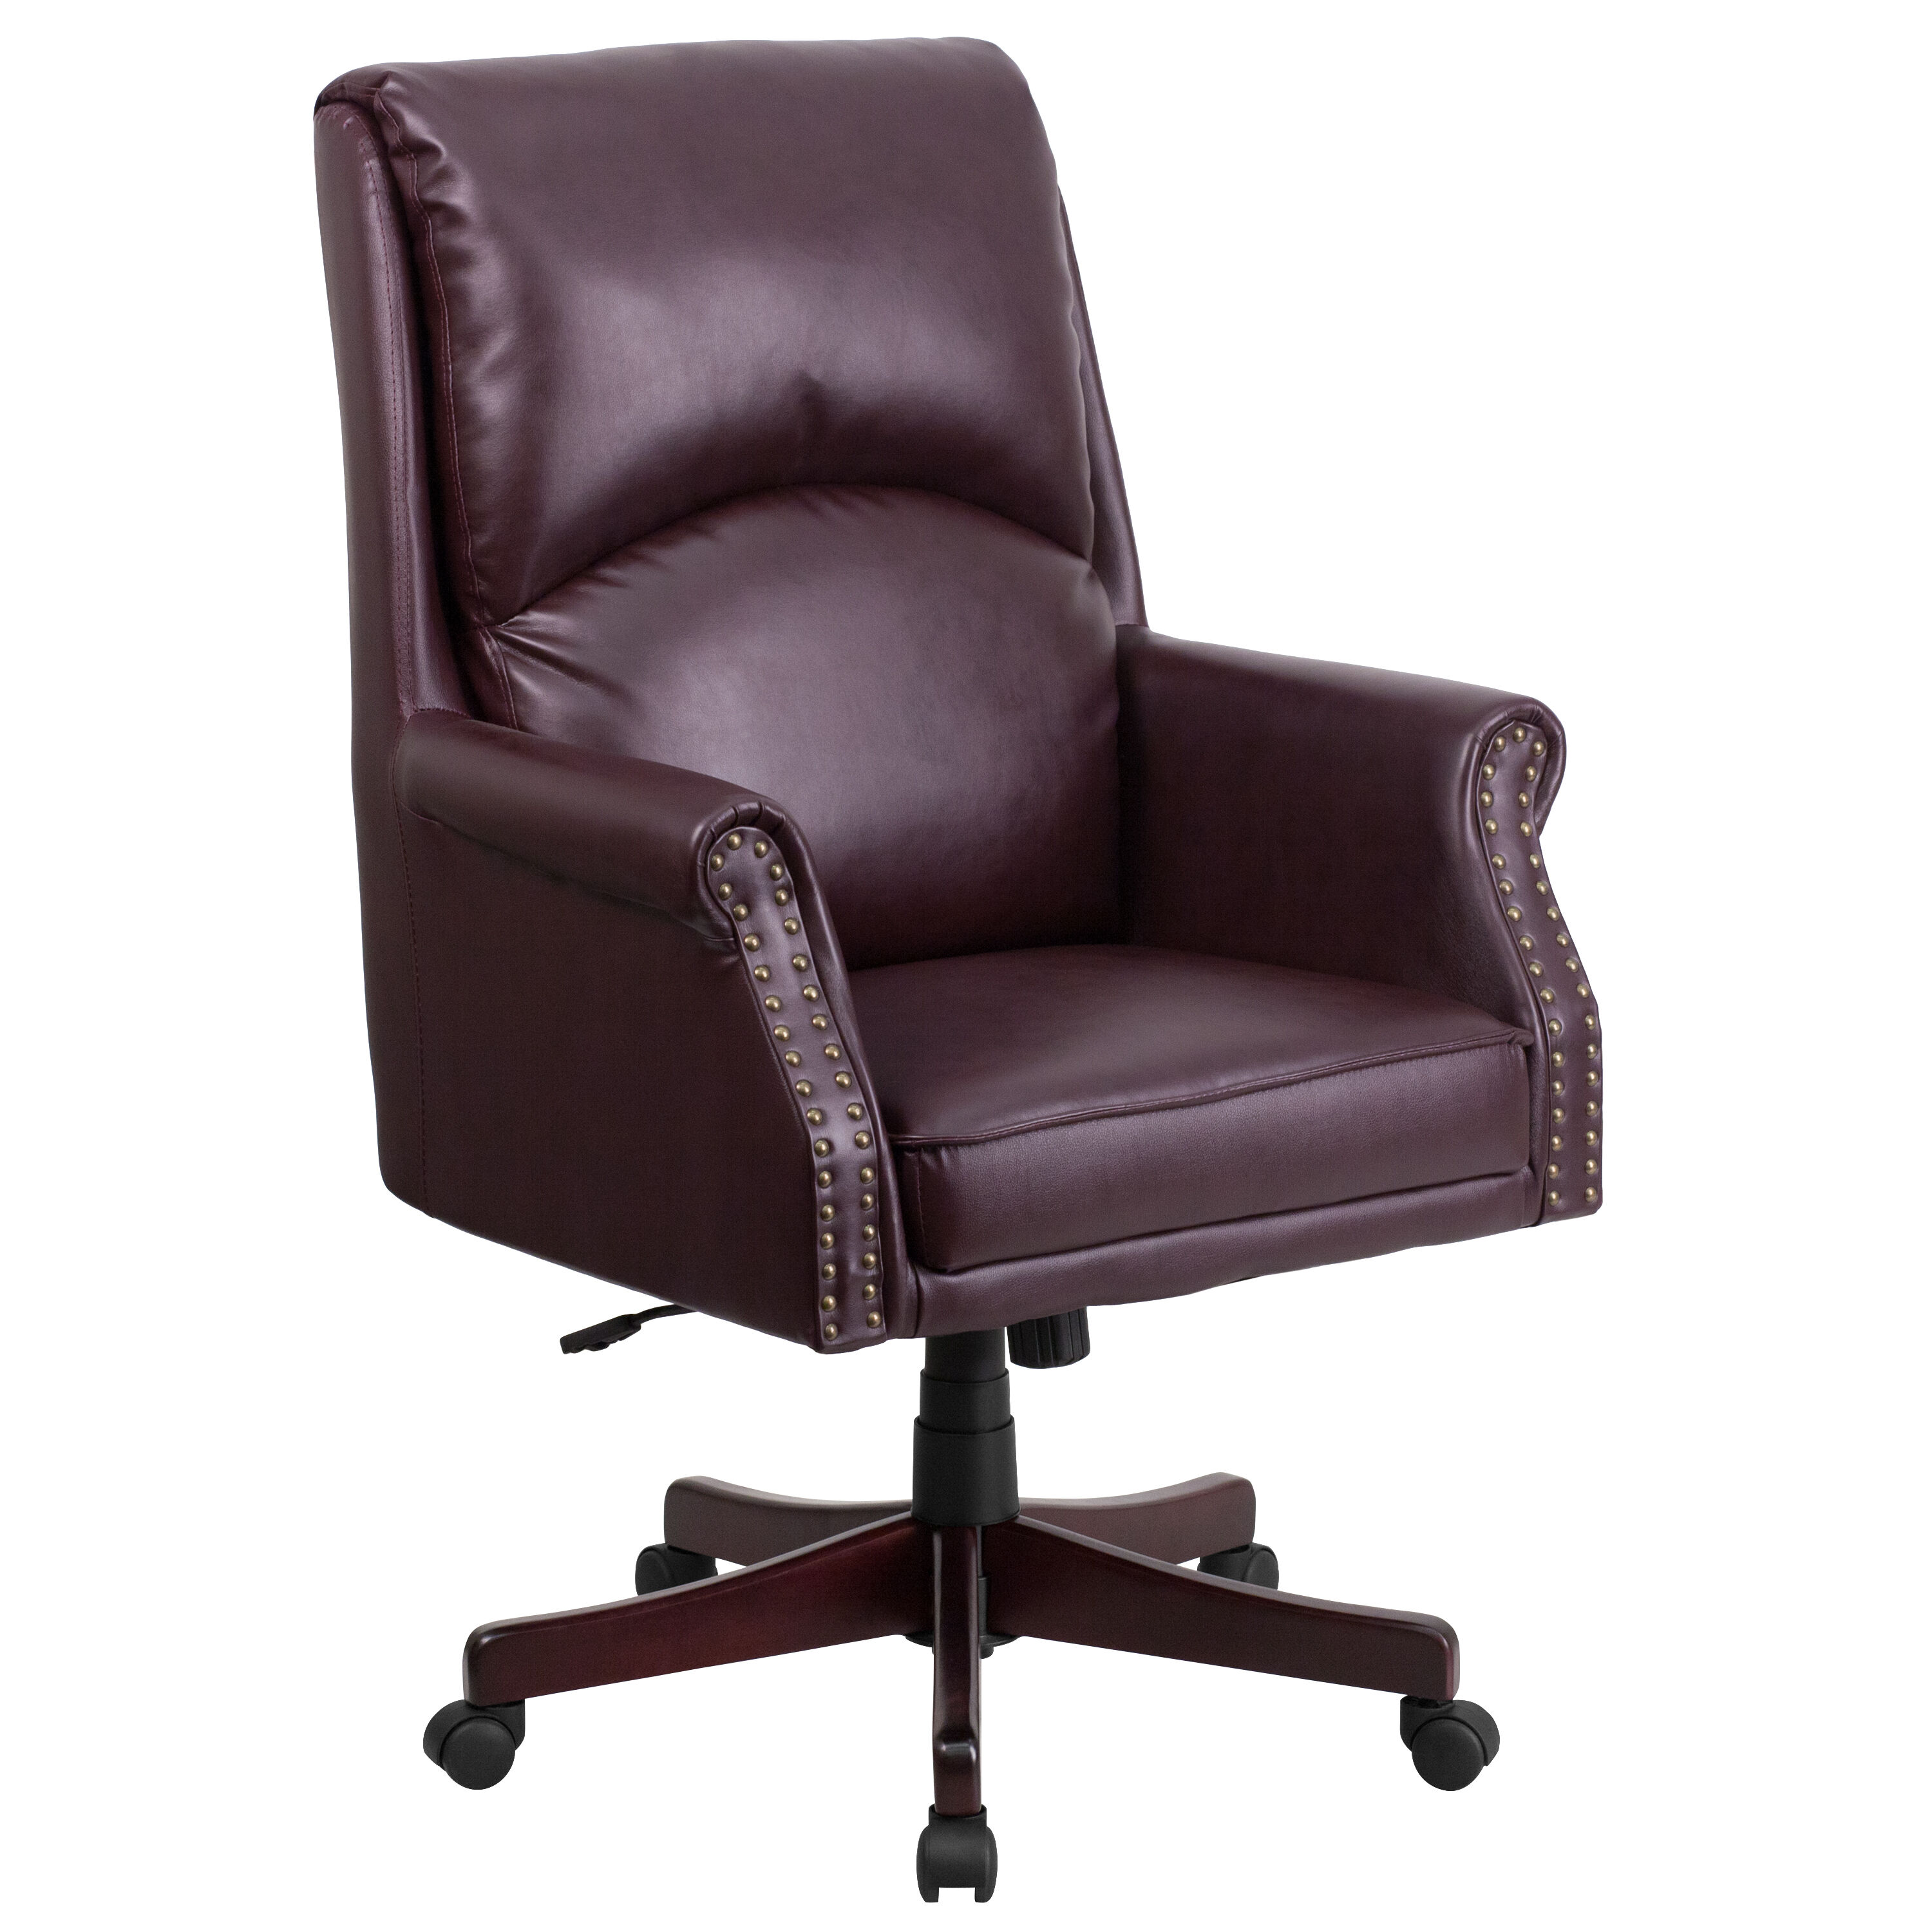 chair pillow for back swing from ceiling burgundy high bt 9025h 2 by gg bizchair com our leather executive swivel office with arms is on sale